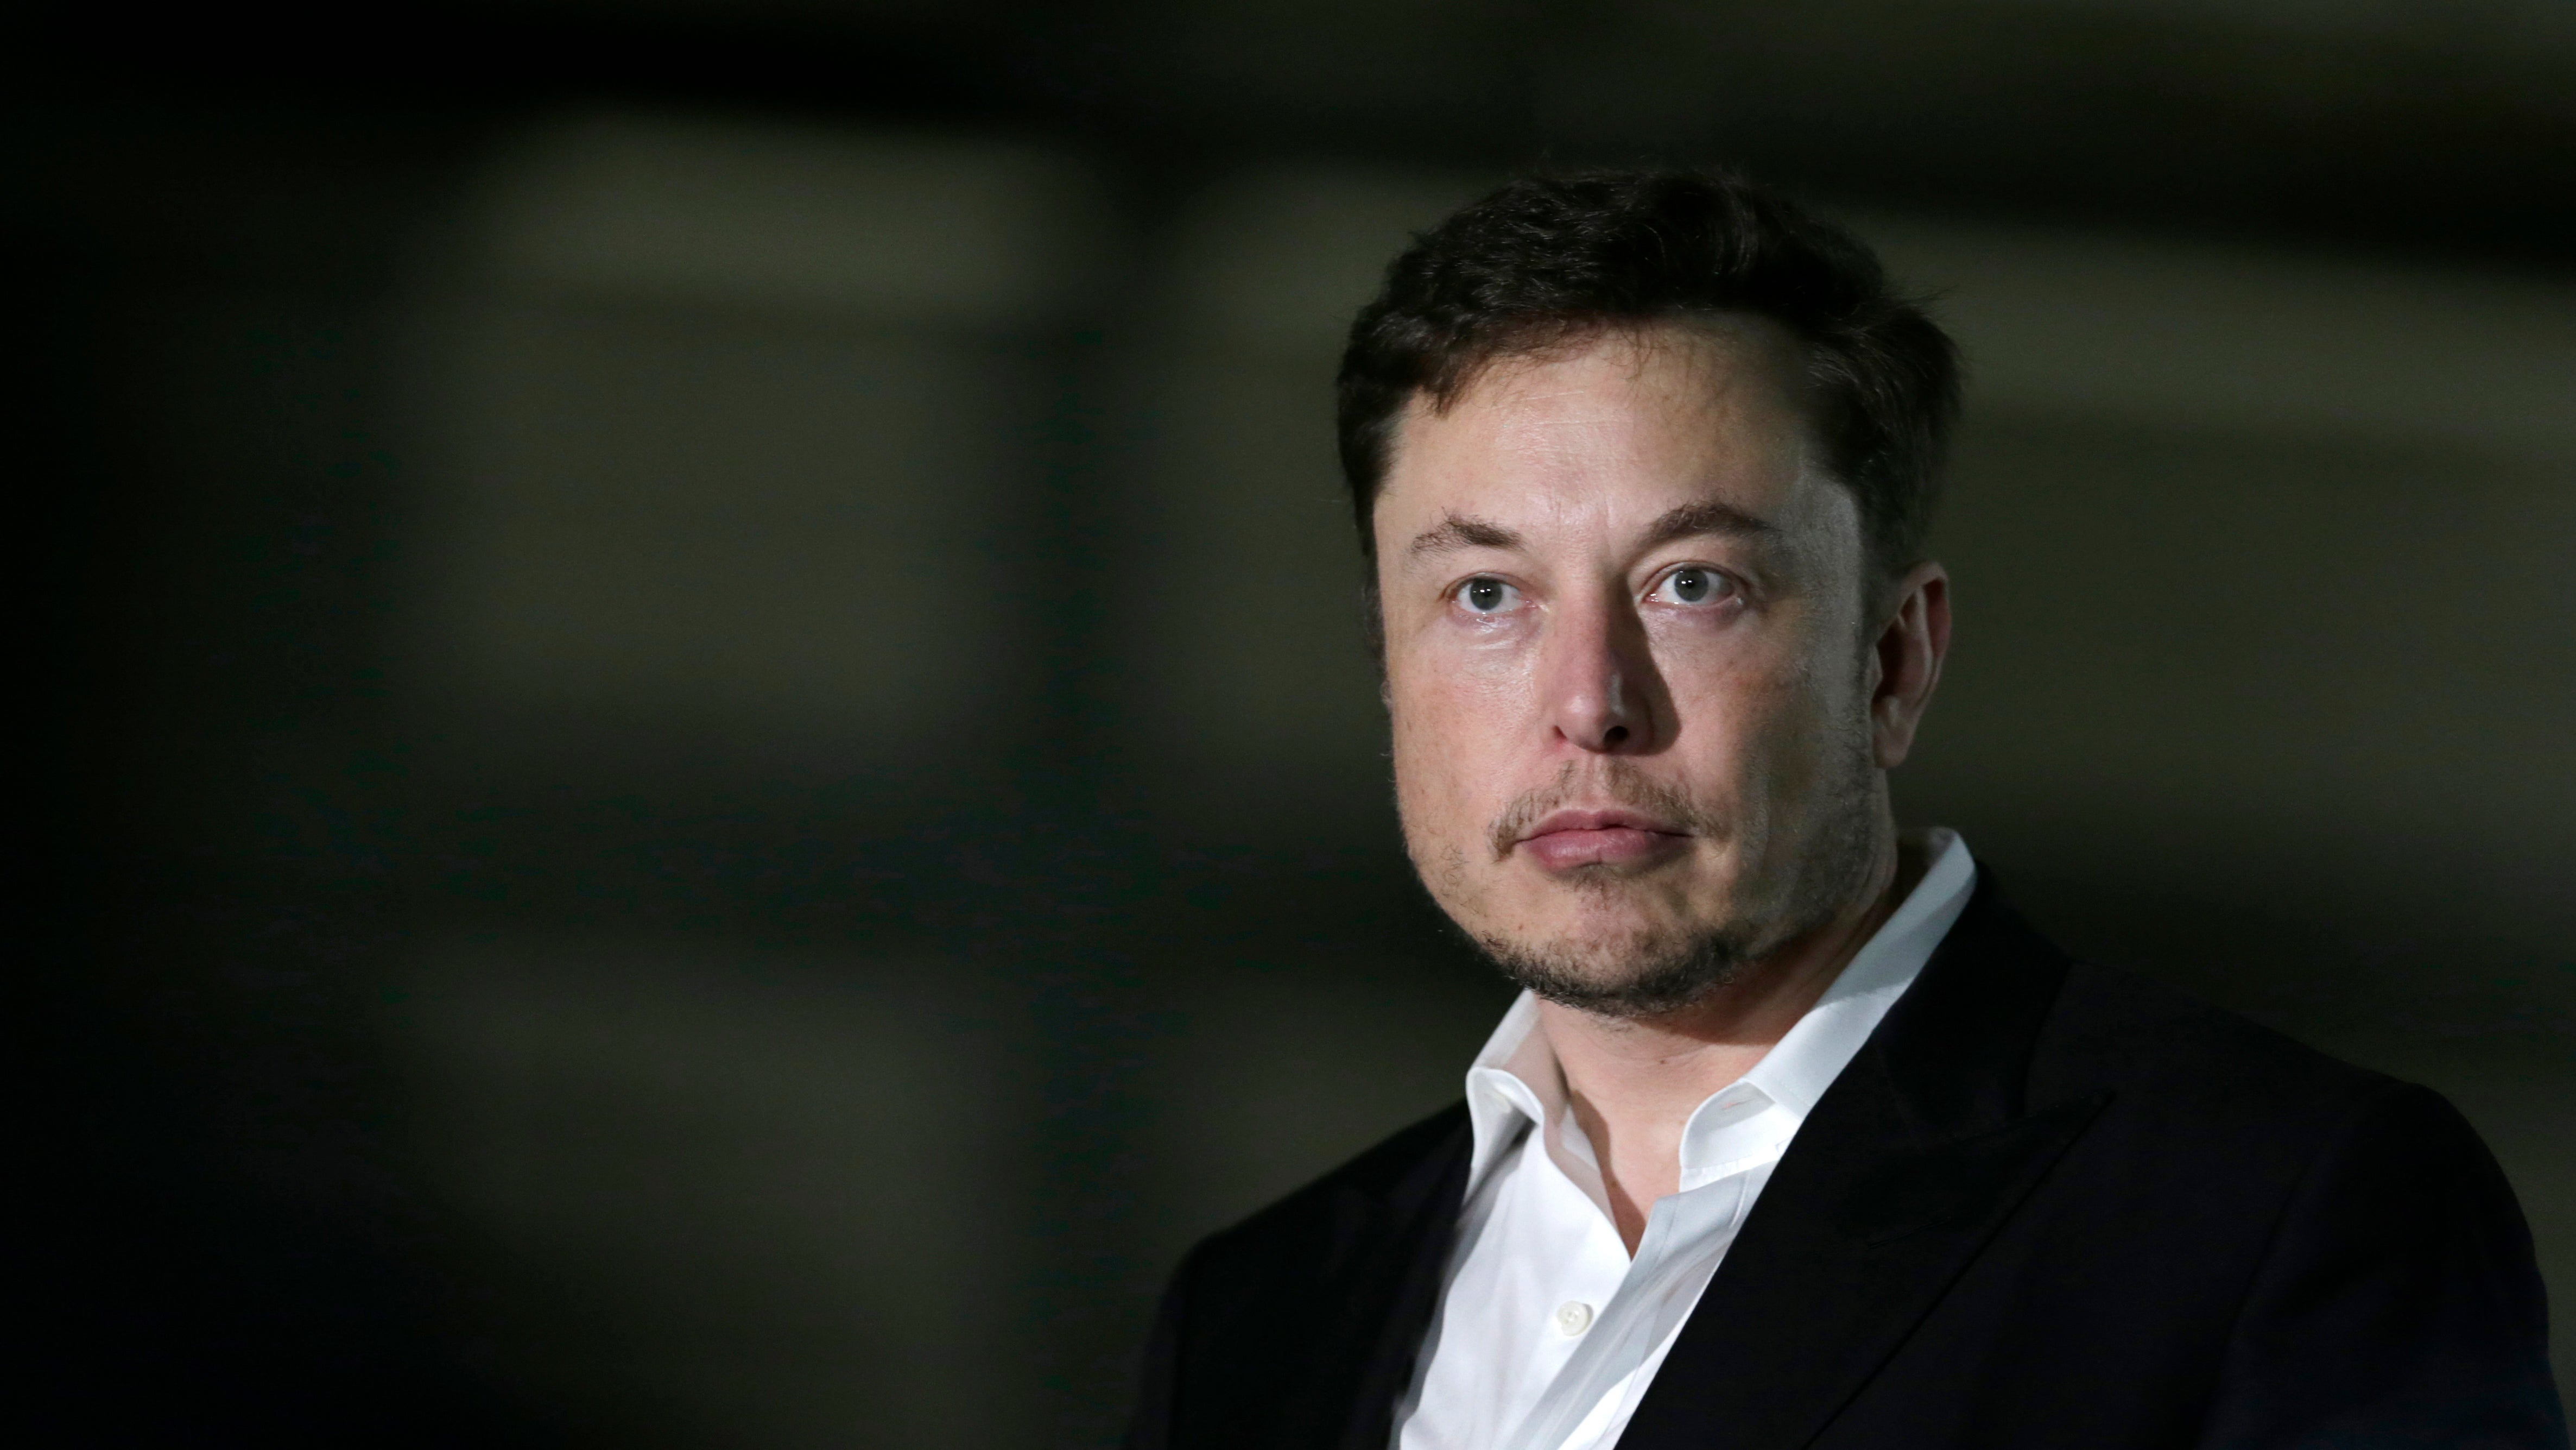 Elon Musk Sued For Defamation By Cave Diver Over 'Pedo' Remarks